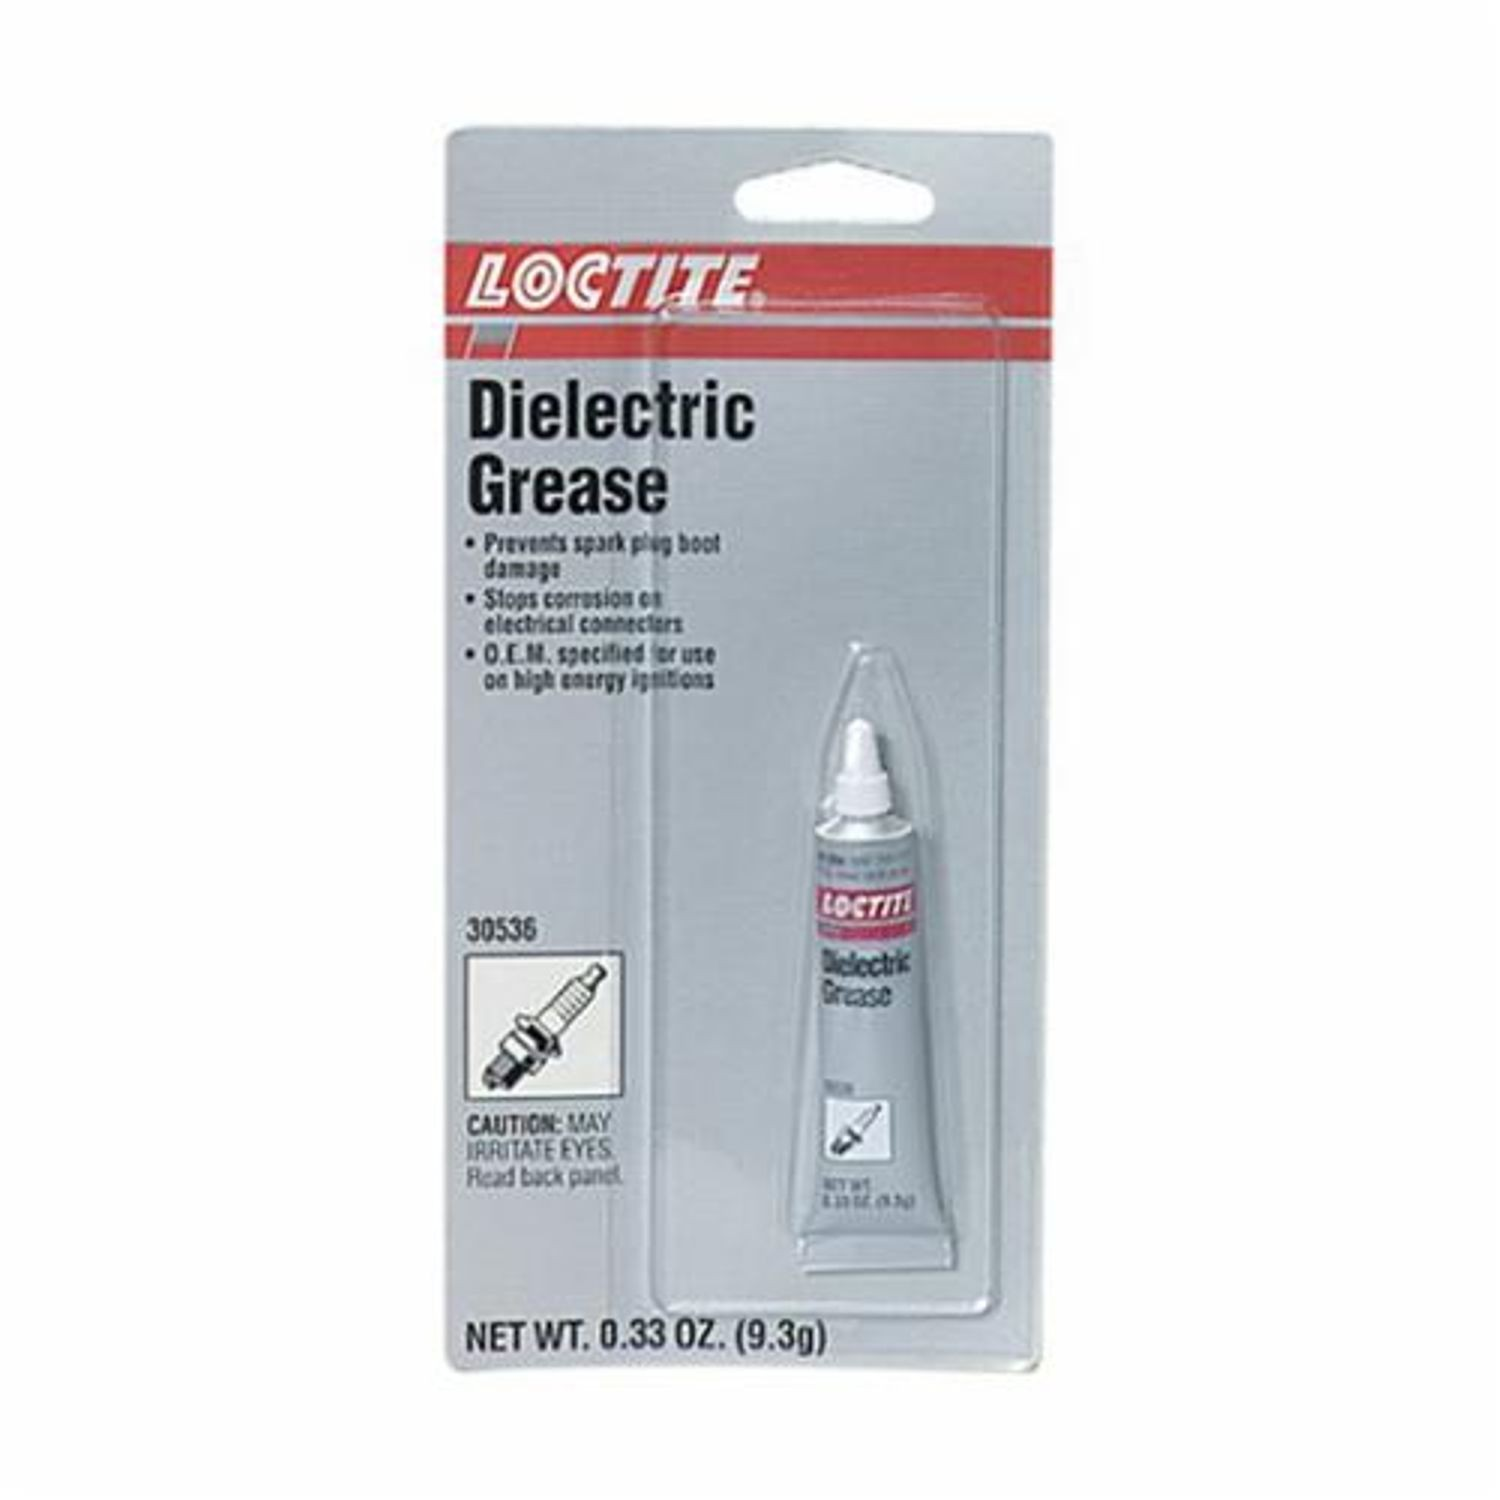 Dielectric Grease Loctite 30536 High Performance Dielectric Grease 33 Oz Tube Liquid Clear